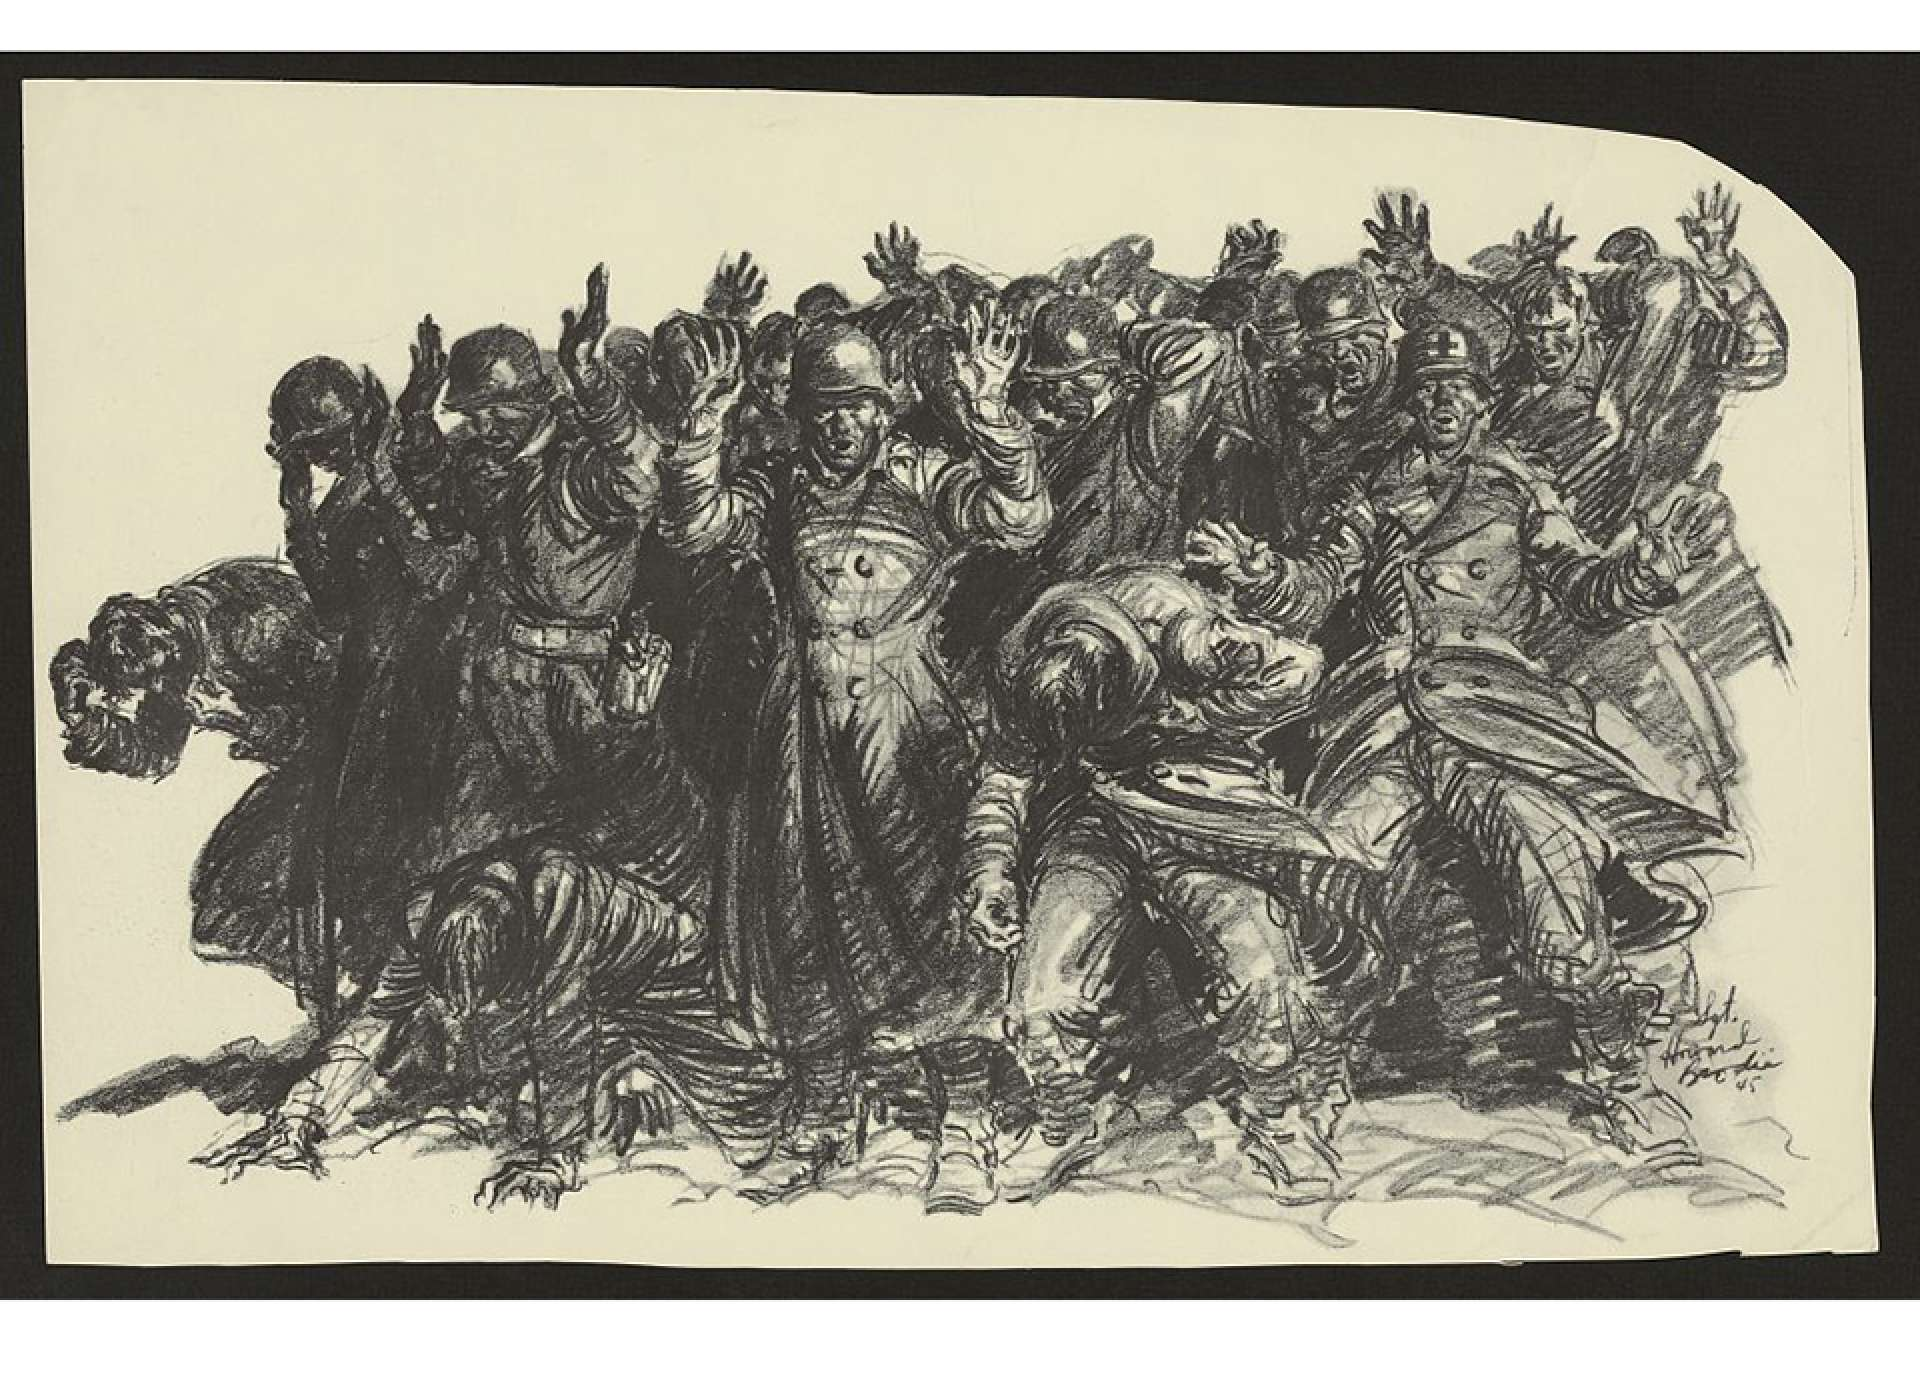 Image by Sgt. Howard Brodie of the last moments before the Malmedy Massacre, based on survivors' accounts. Library of Congress Prints and Photographs Division.